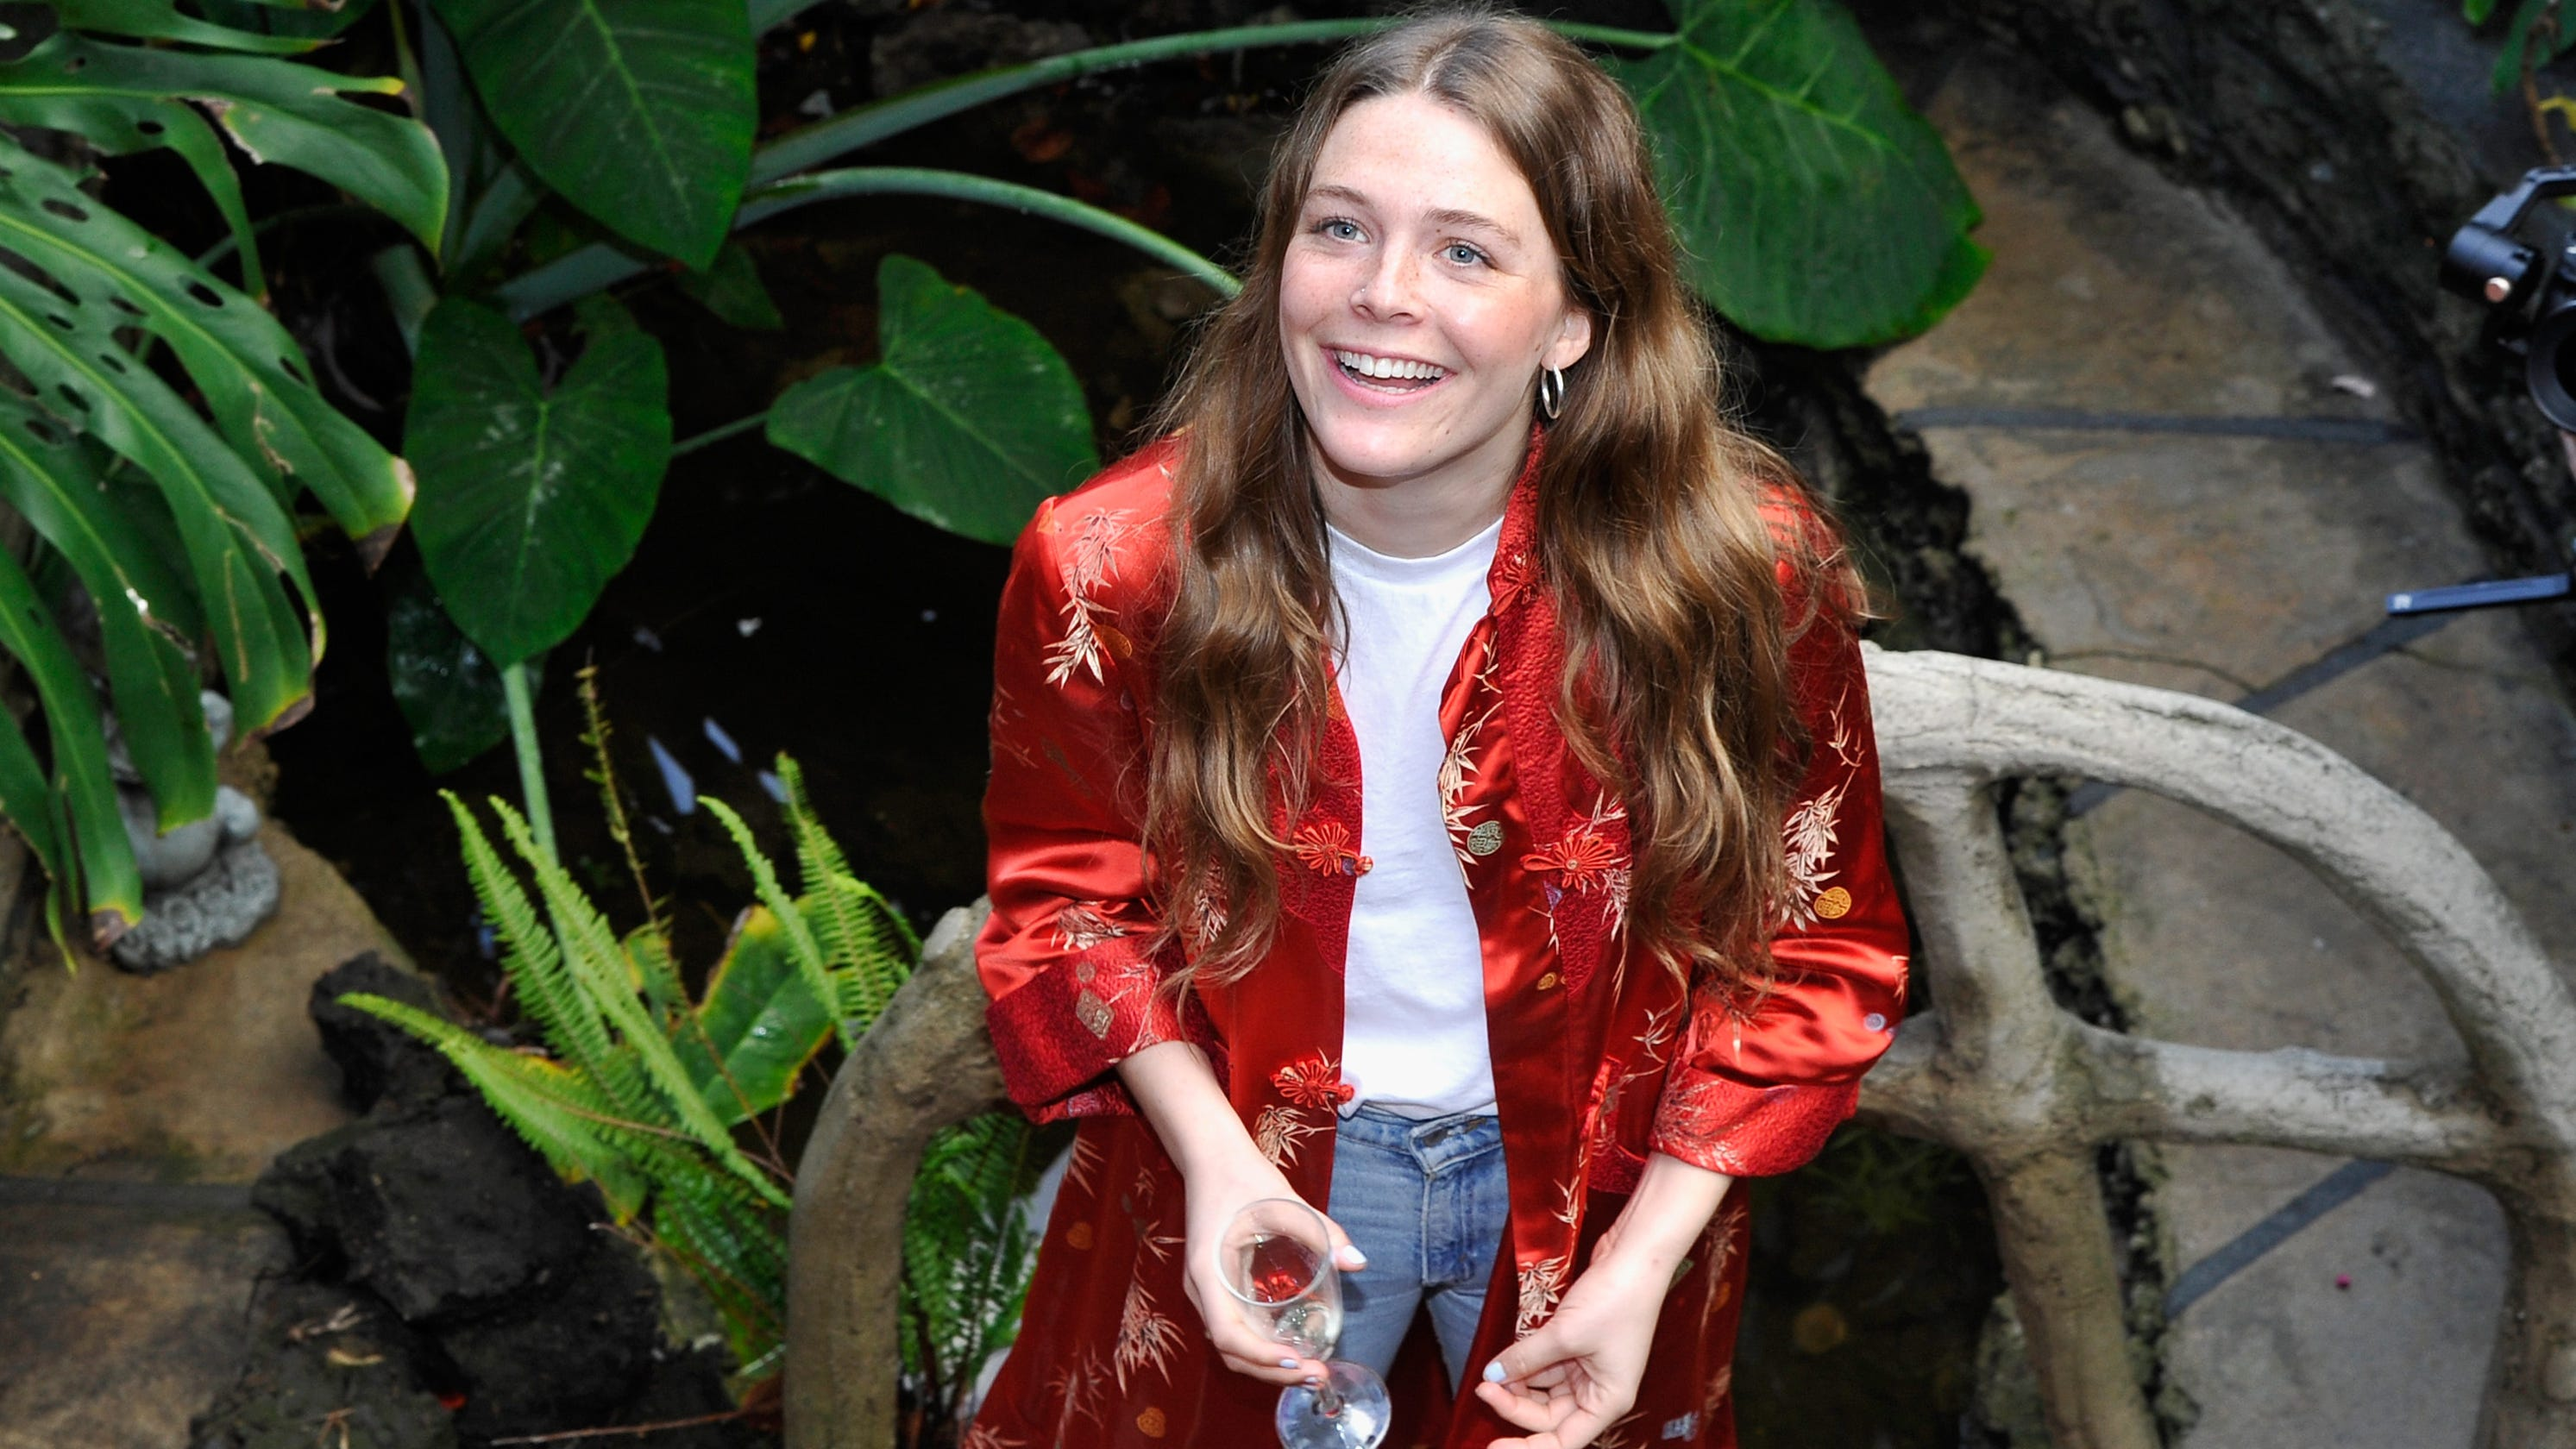 5 things about viral star Maggie Rogers, from Pharrell to 'SNL'